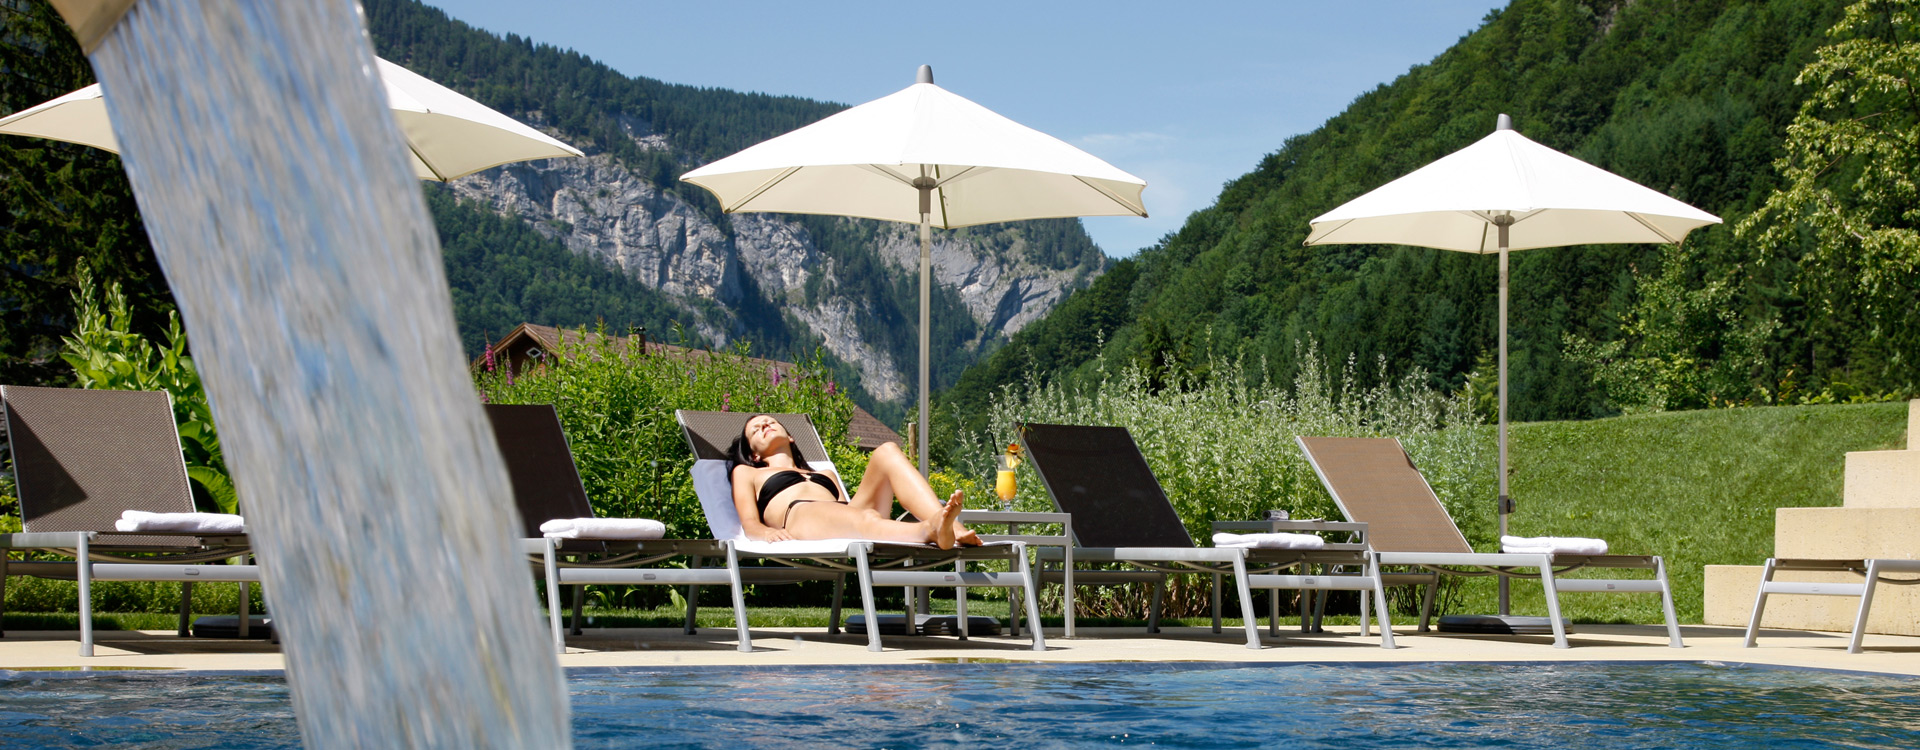 Adults Only Hotel Vorarlberg